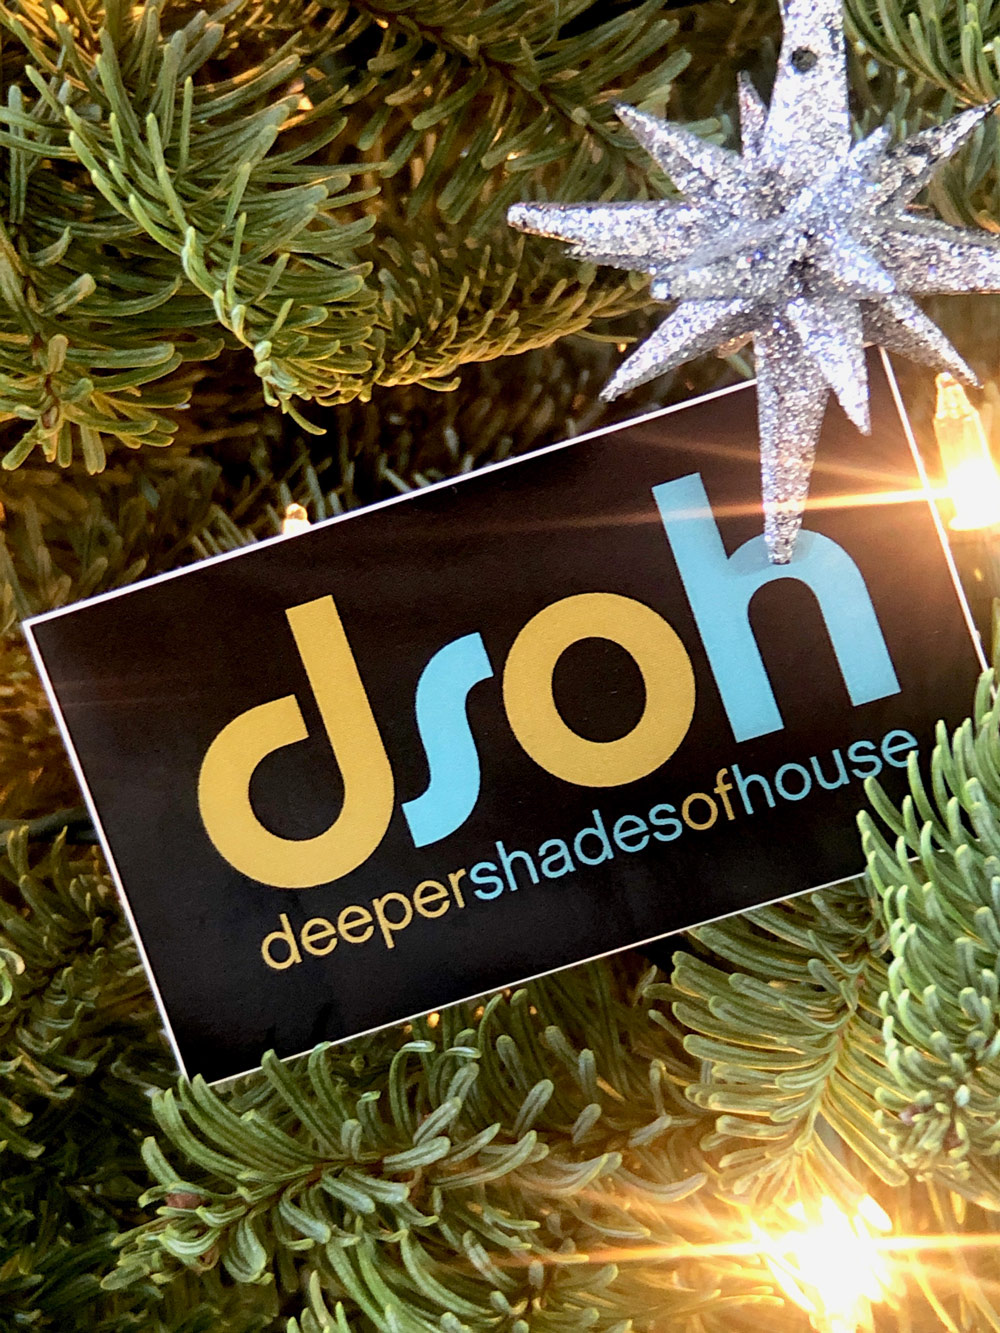 HAPPY HOLIDAYS DSOH FAMILY